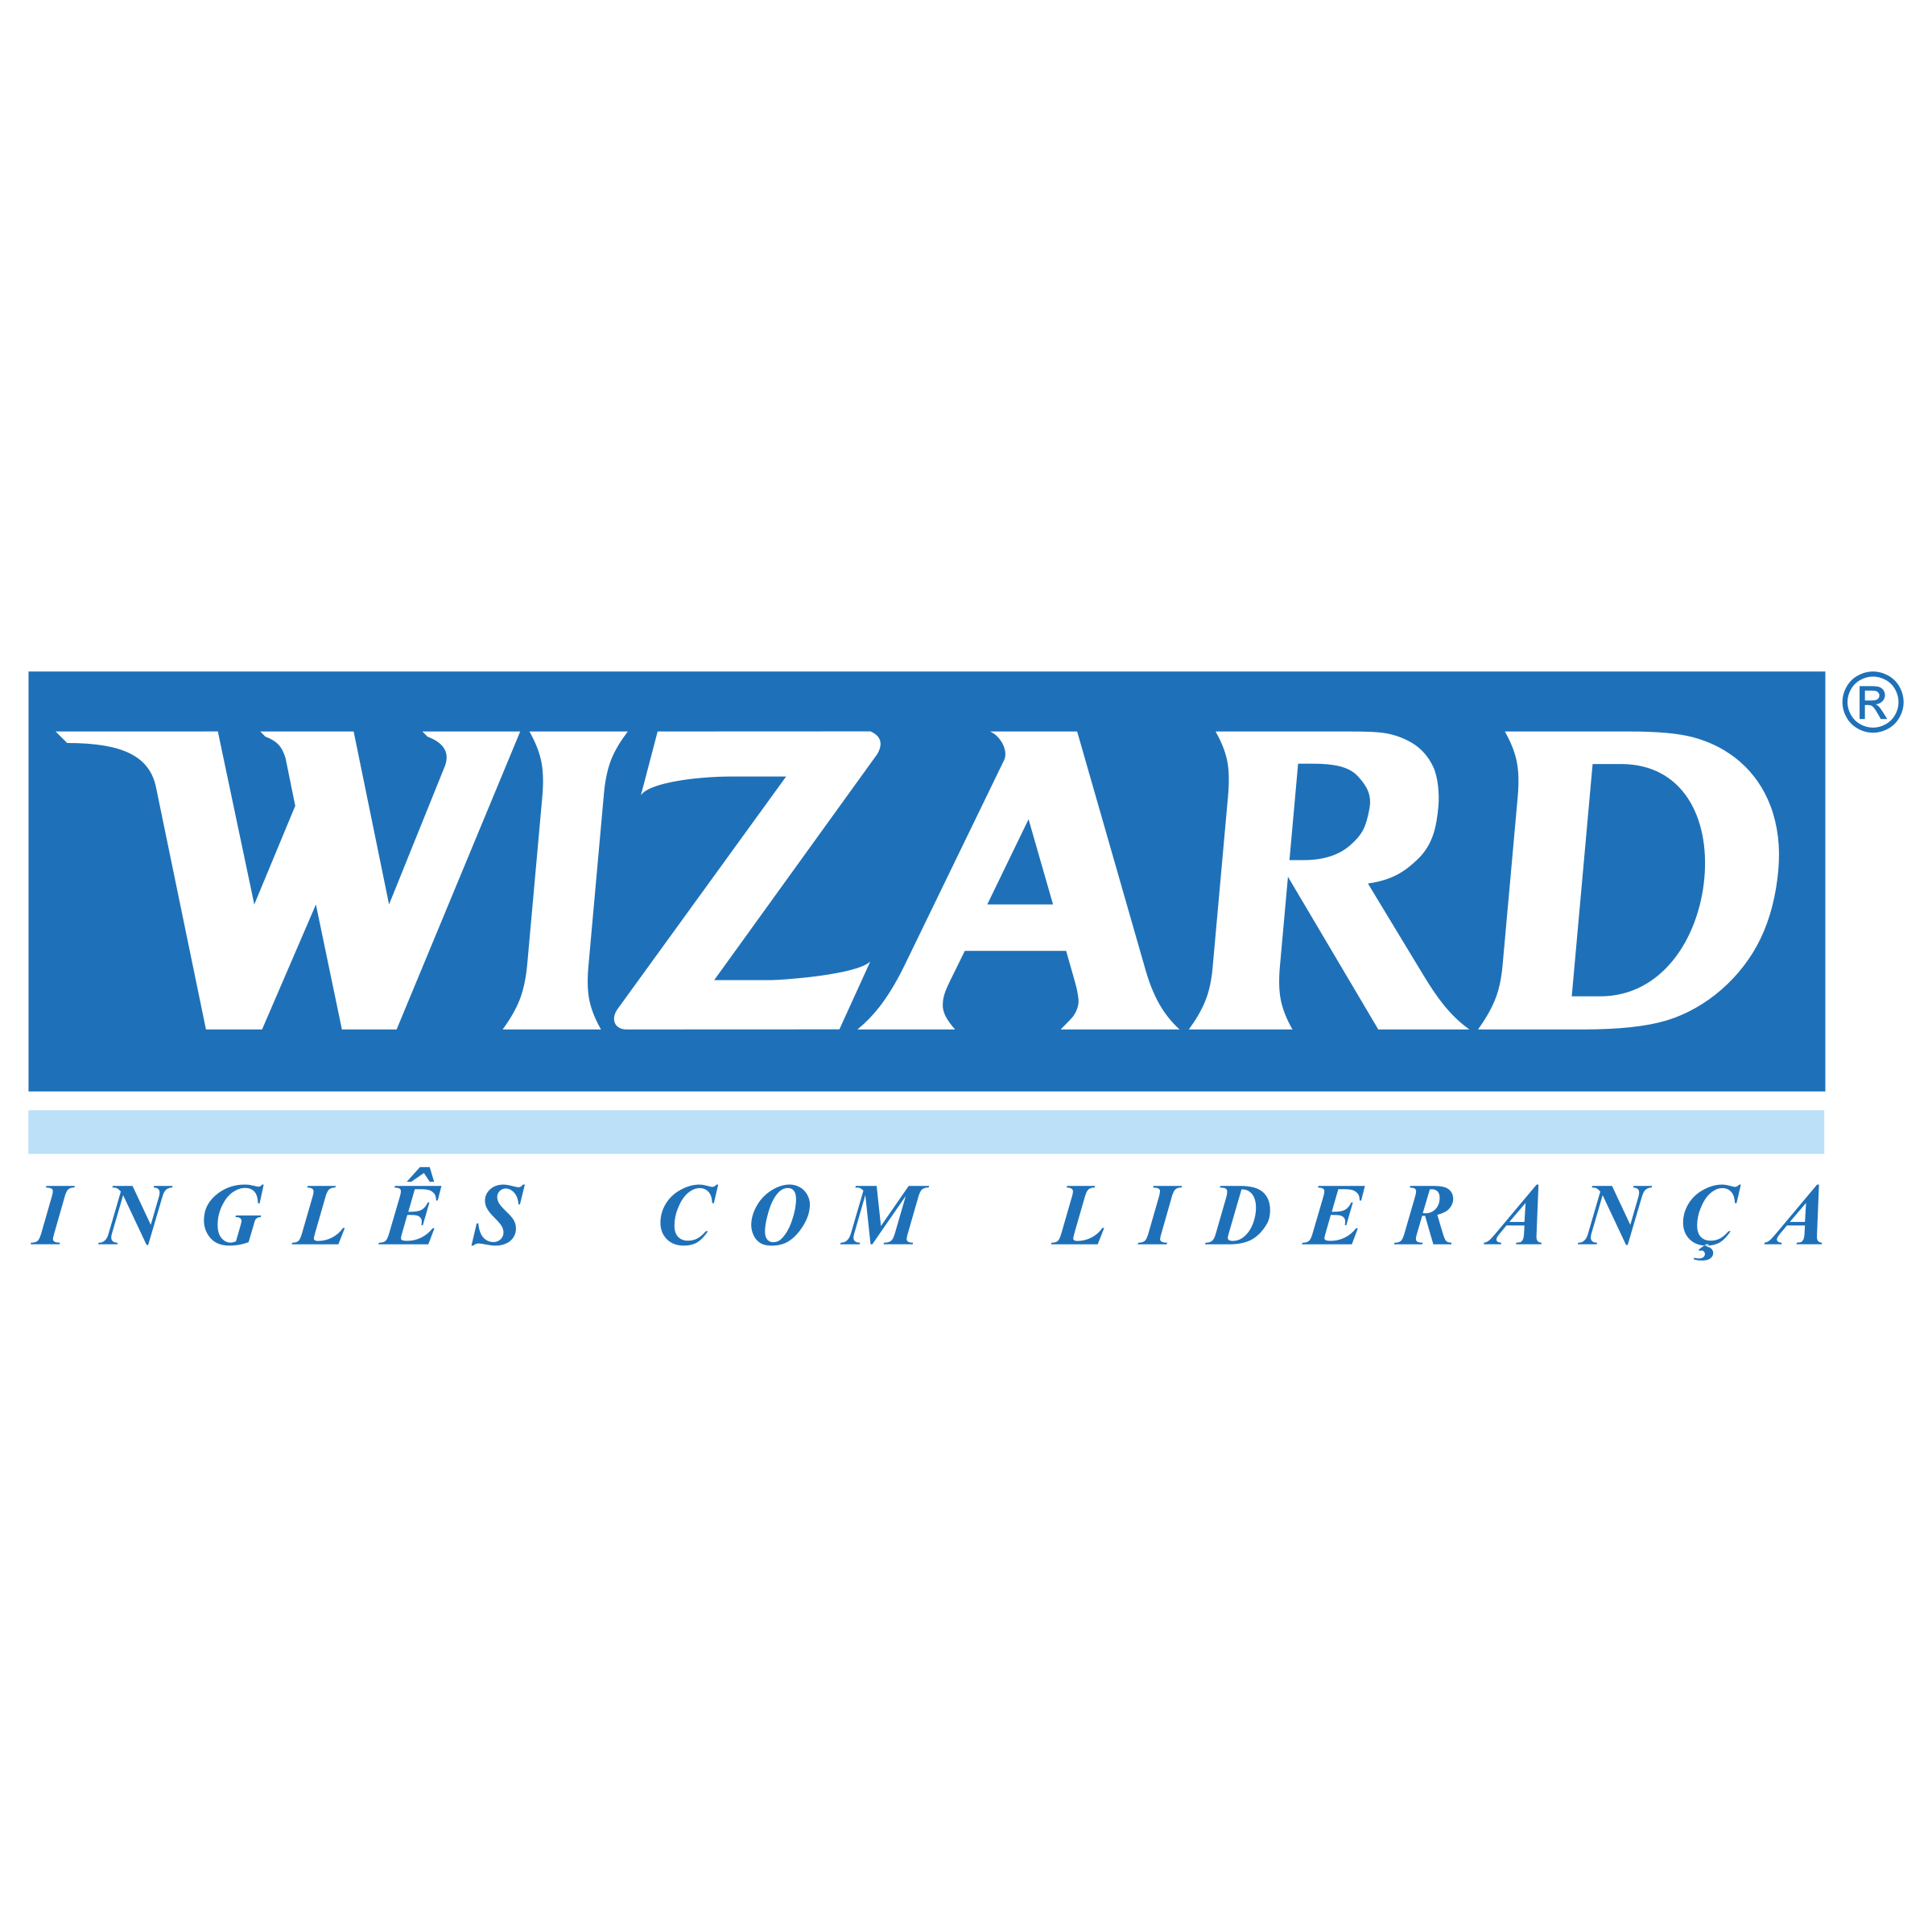 Wizard Logo PNG Transparent & SVG Vector.